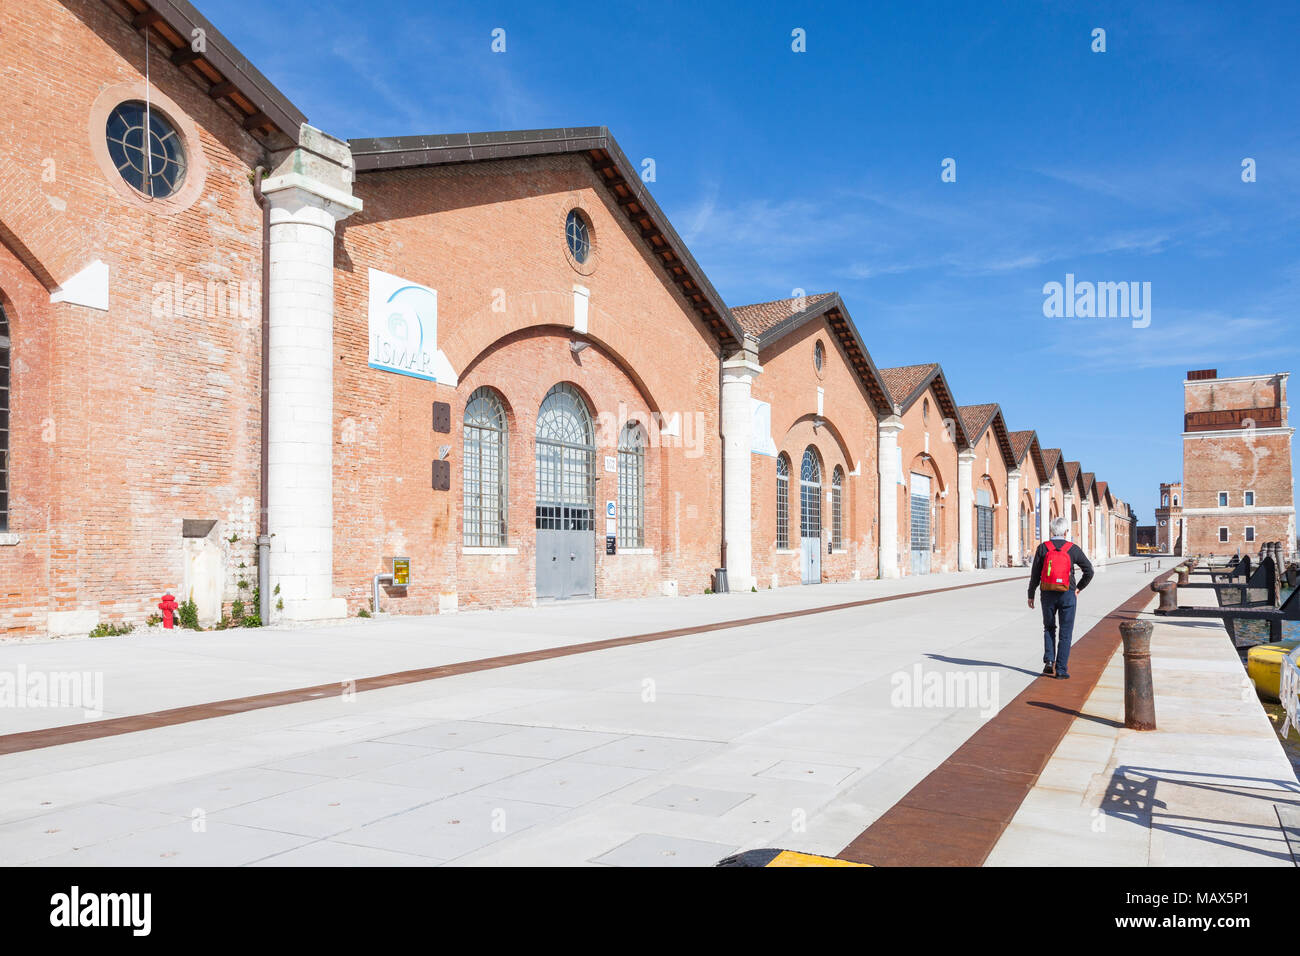 Man walking along the quay at Darsena Nuovissima, Arsenale, Venice, Italy passing the old boatbuilding workshops now used by Biennale and businesses - Stock Image